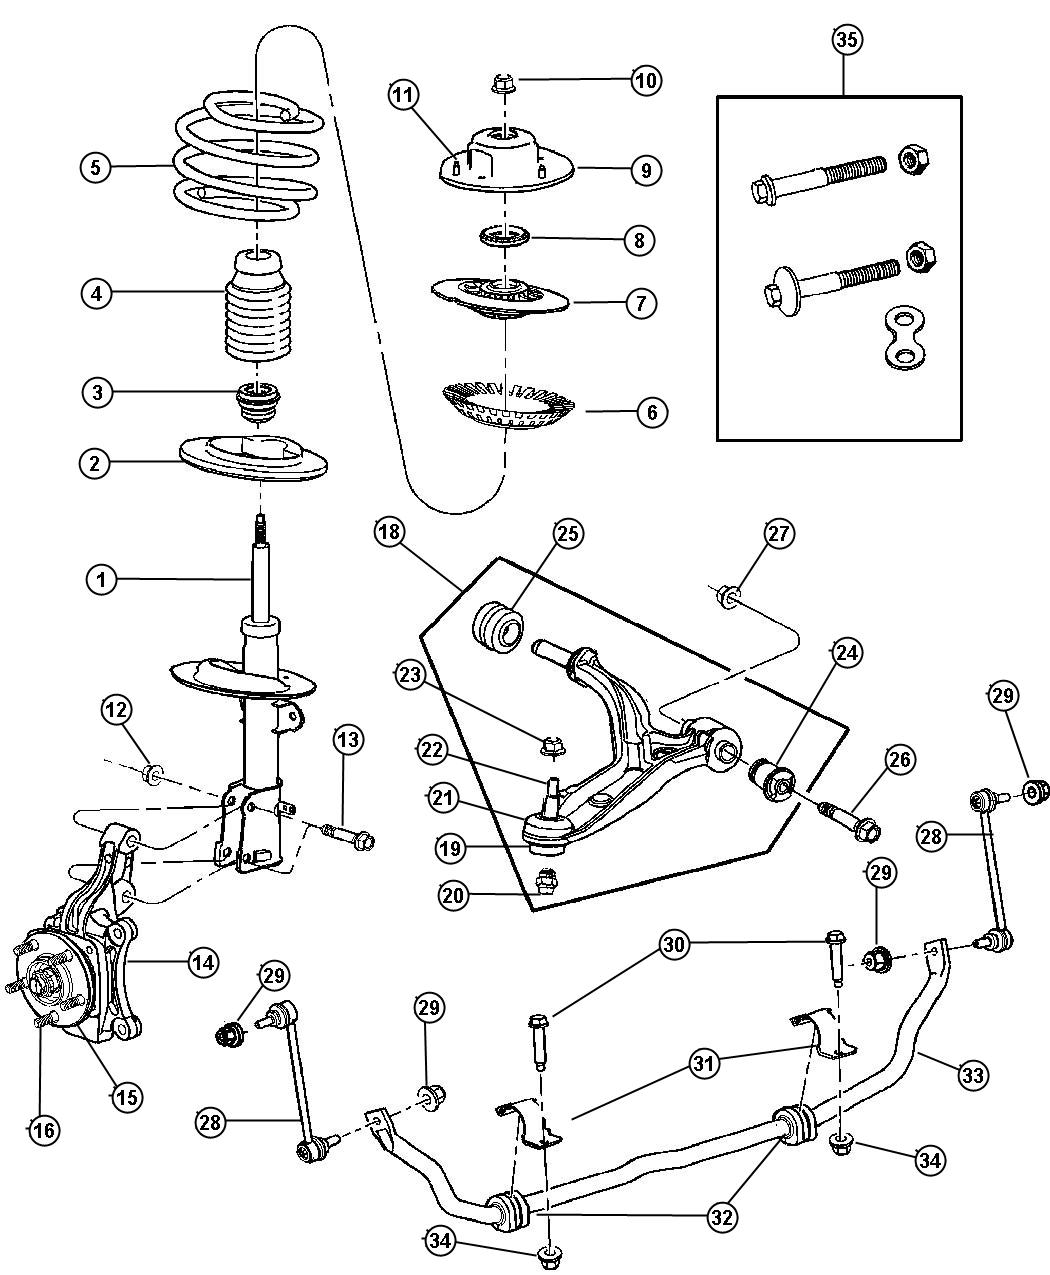 hight resolution of dodge neon wiring diagram download diagrams dodge auto 1995 dodge neon 1999 dodge neon highline 1995 dodge caravan fuse box